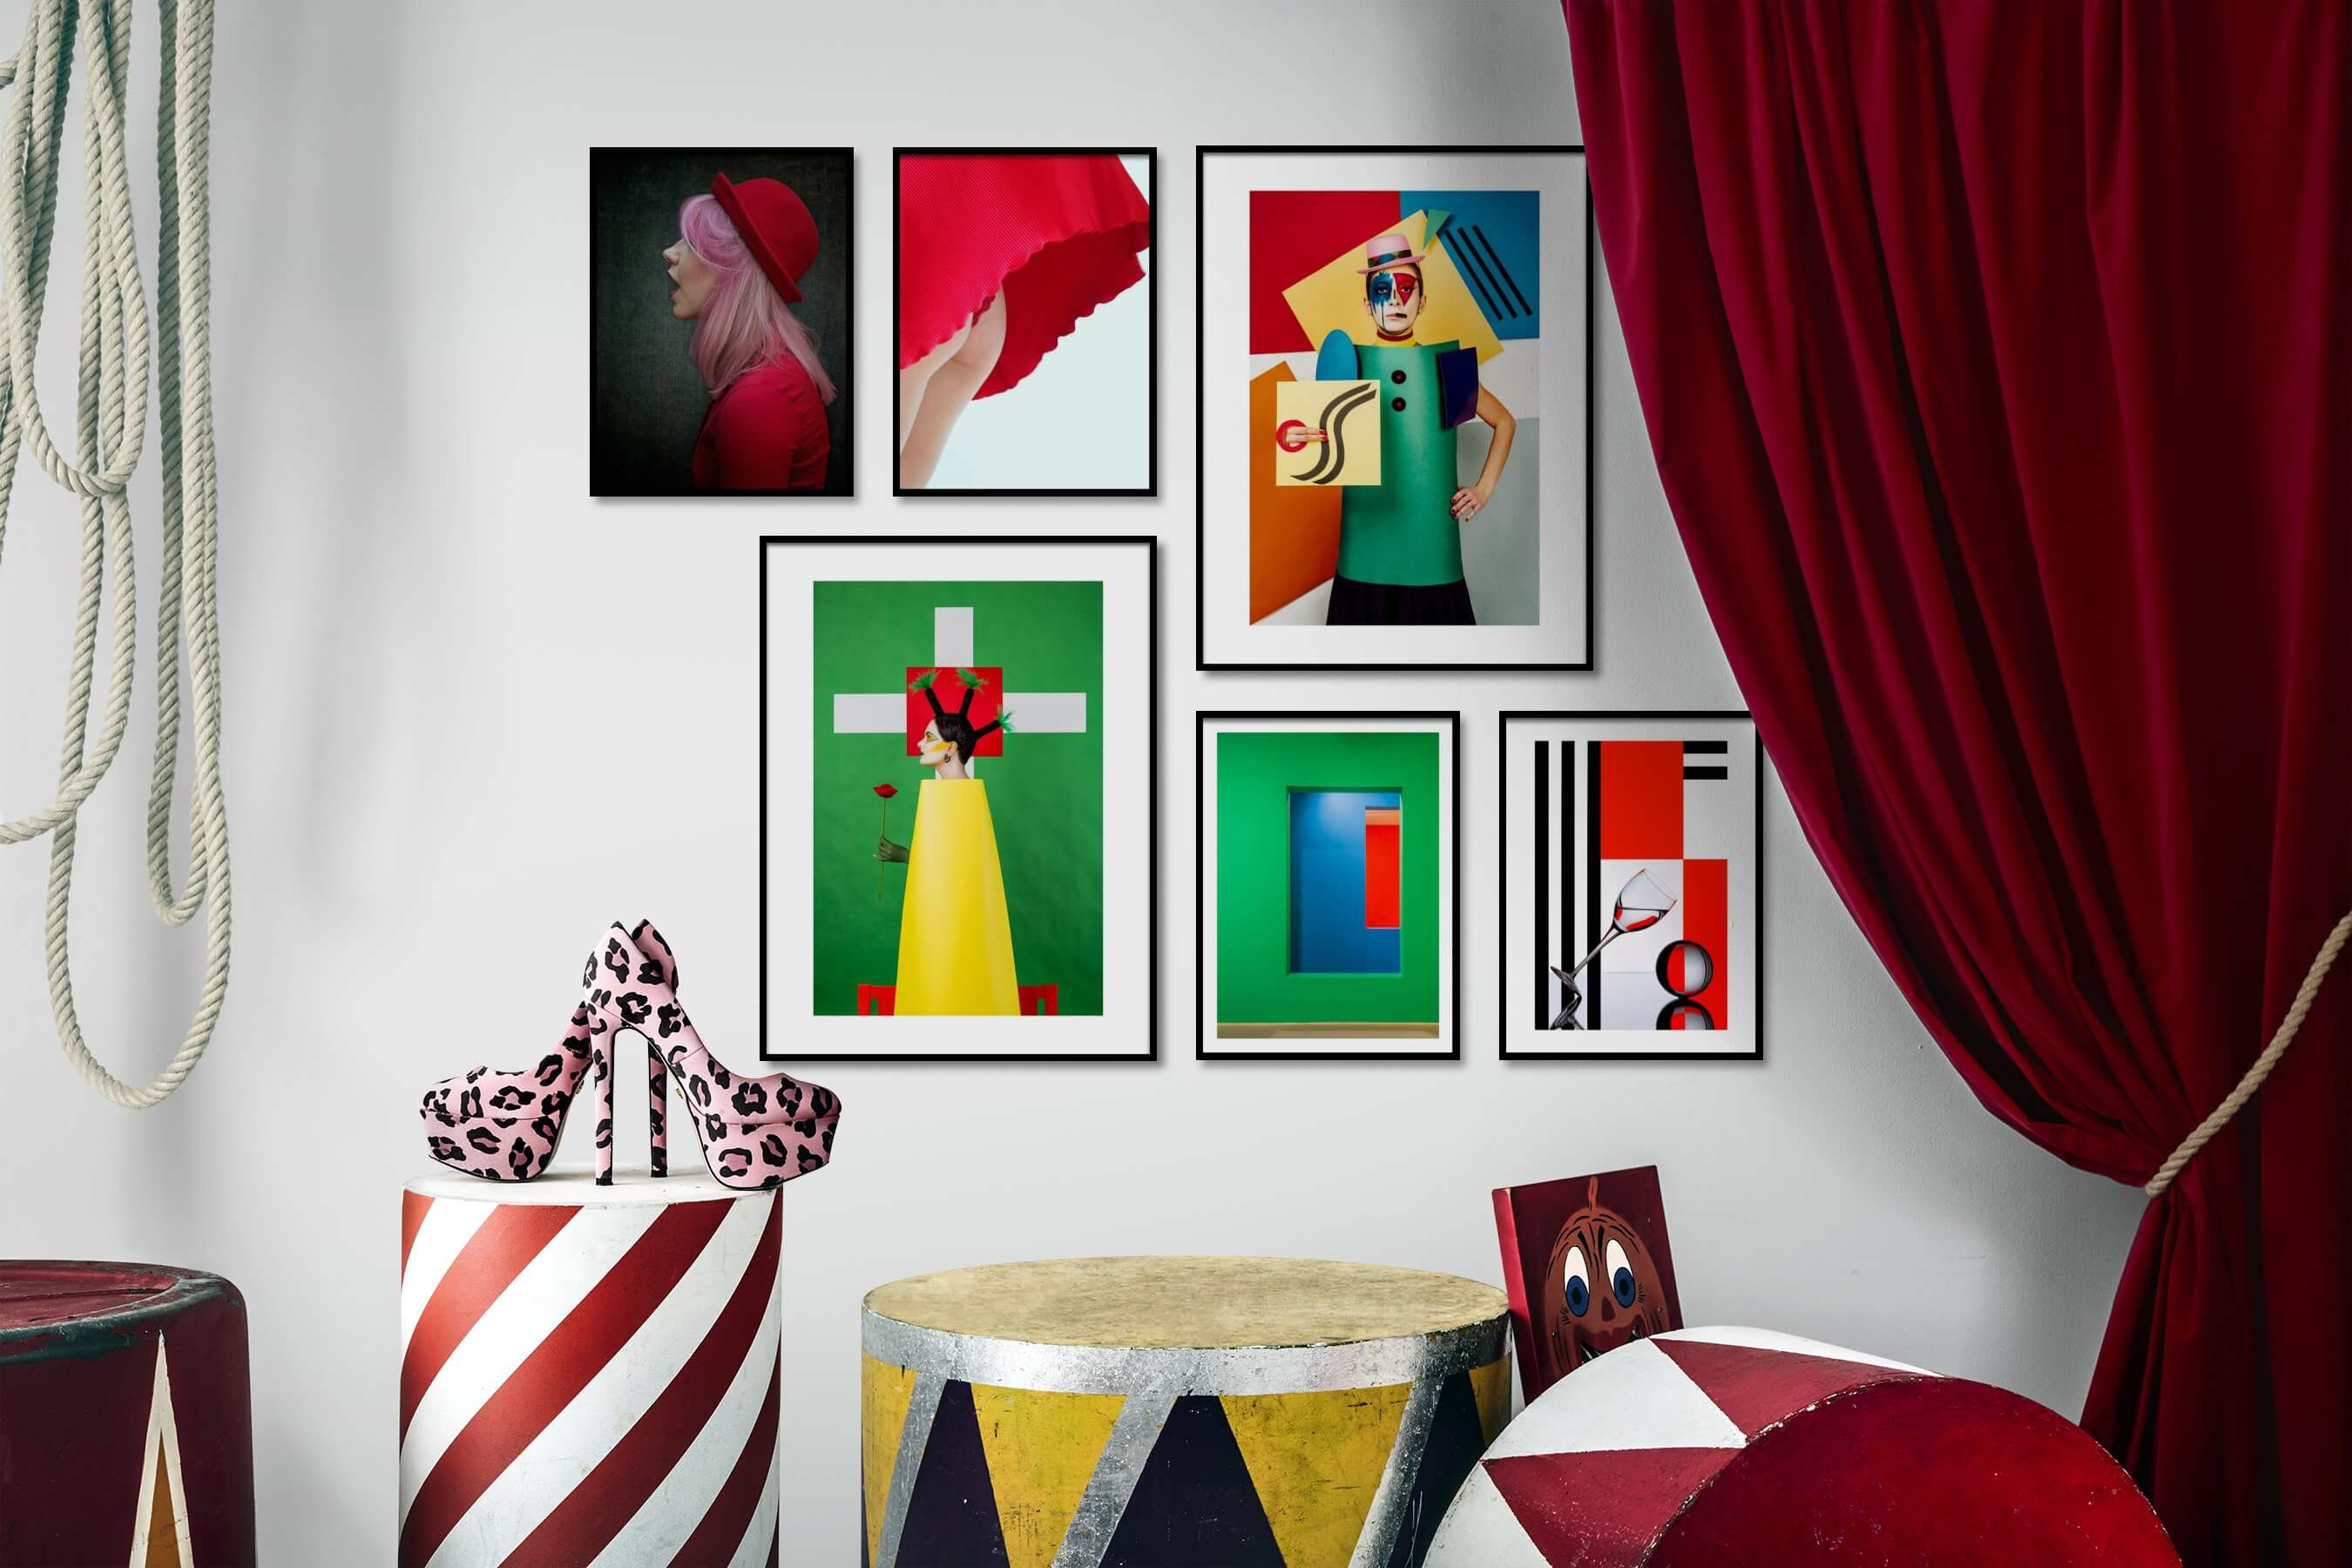 Gallery wall idea with six framed pictures arranged on a wall depicting Fashion & Beauty, For the Minimalist, Artsy, Colorful, and For the Maximalist